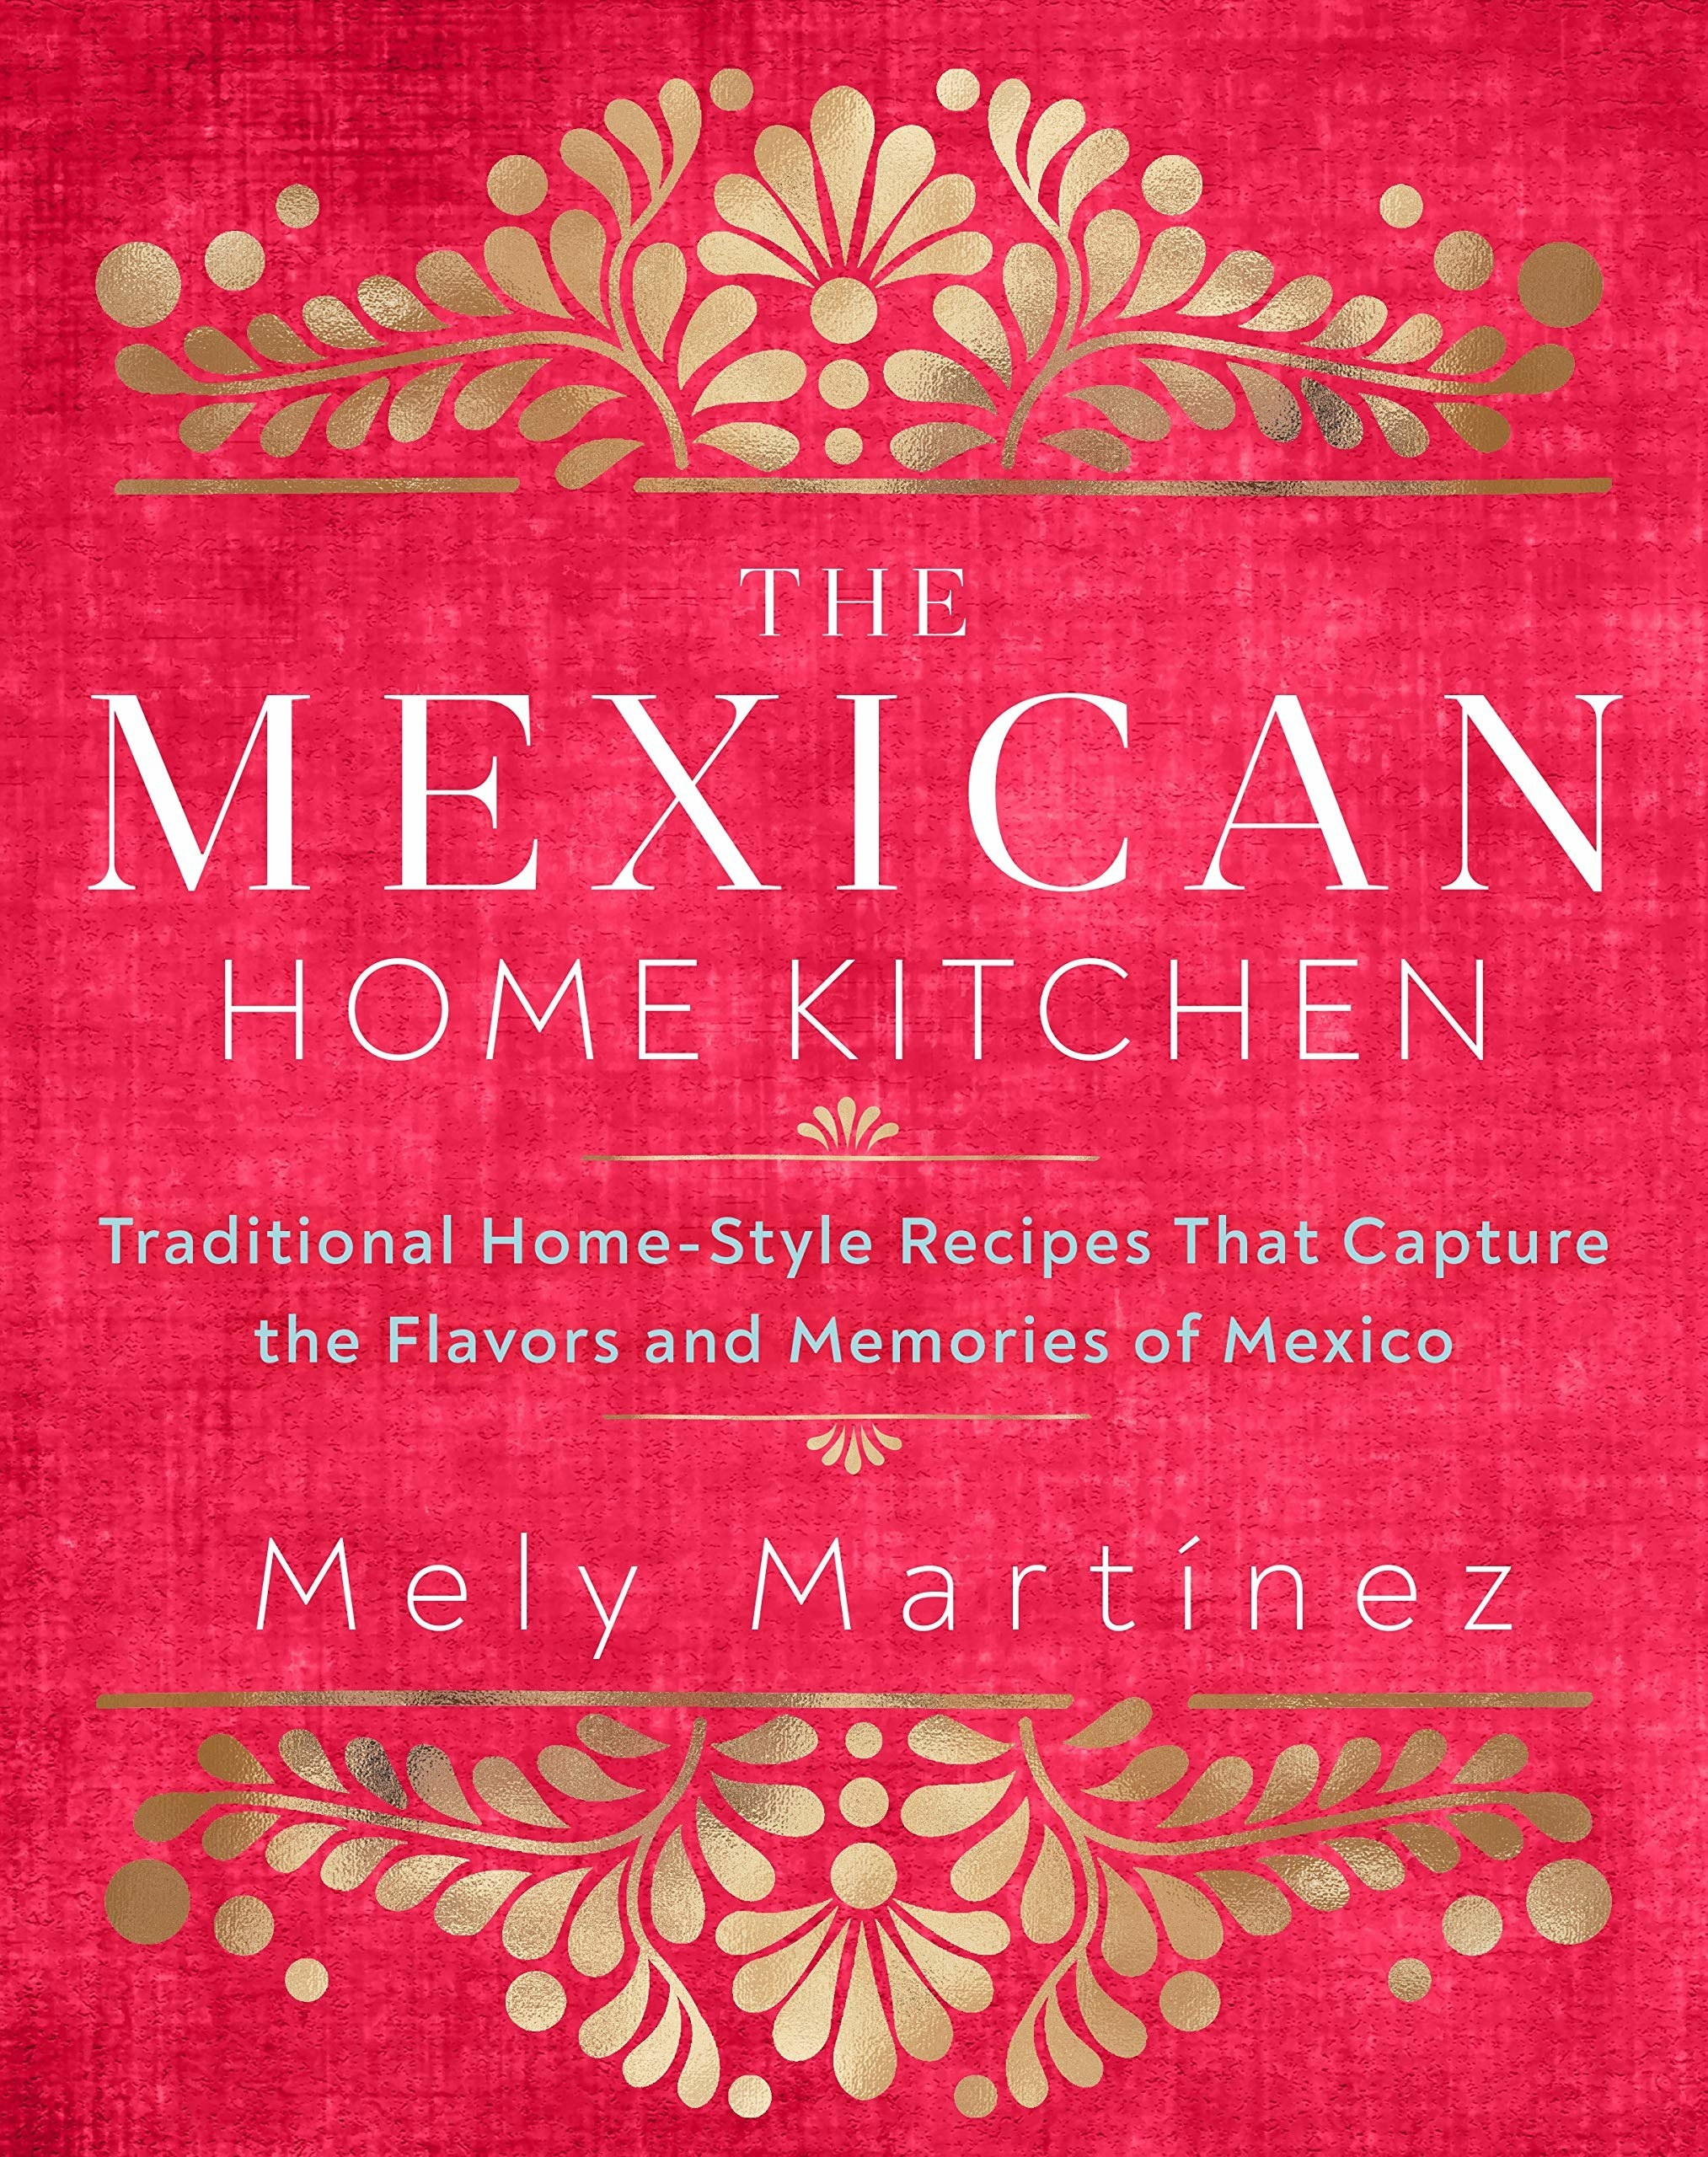 The cover of The Mexican Home Kitchen by Mely Martínez